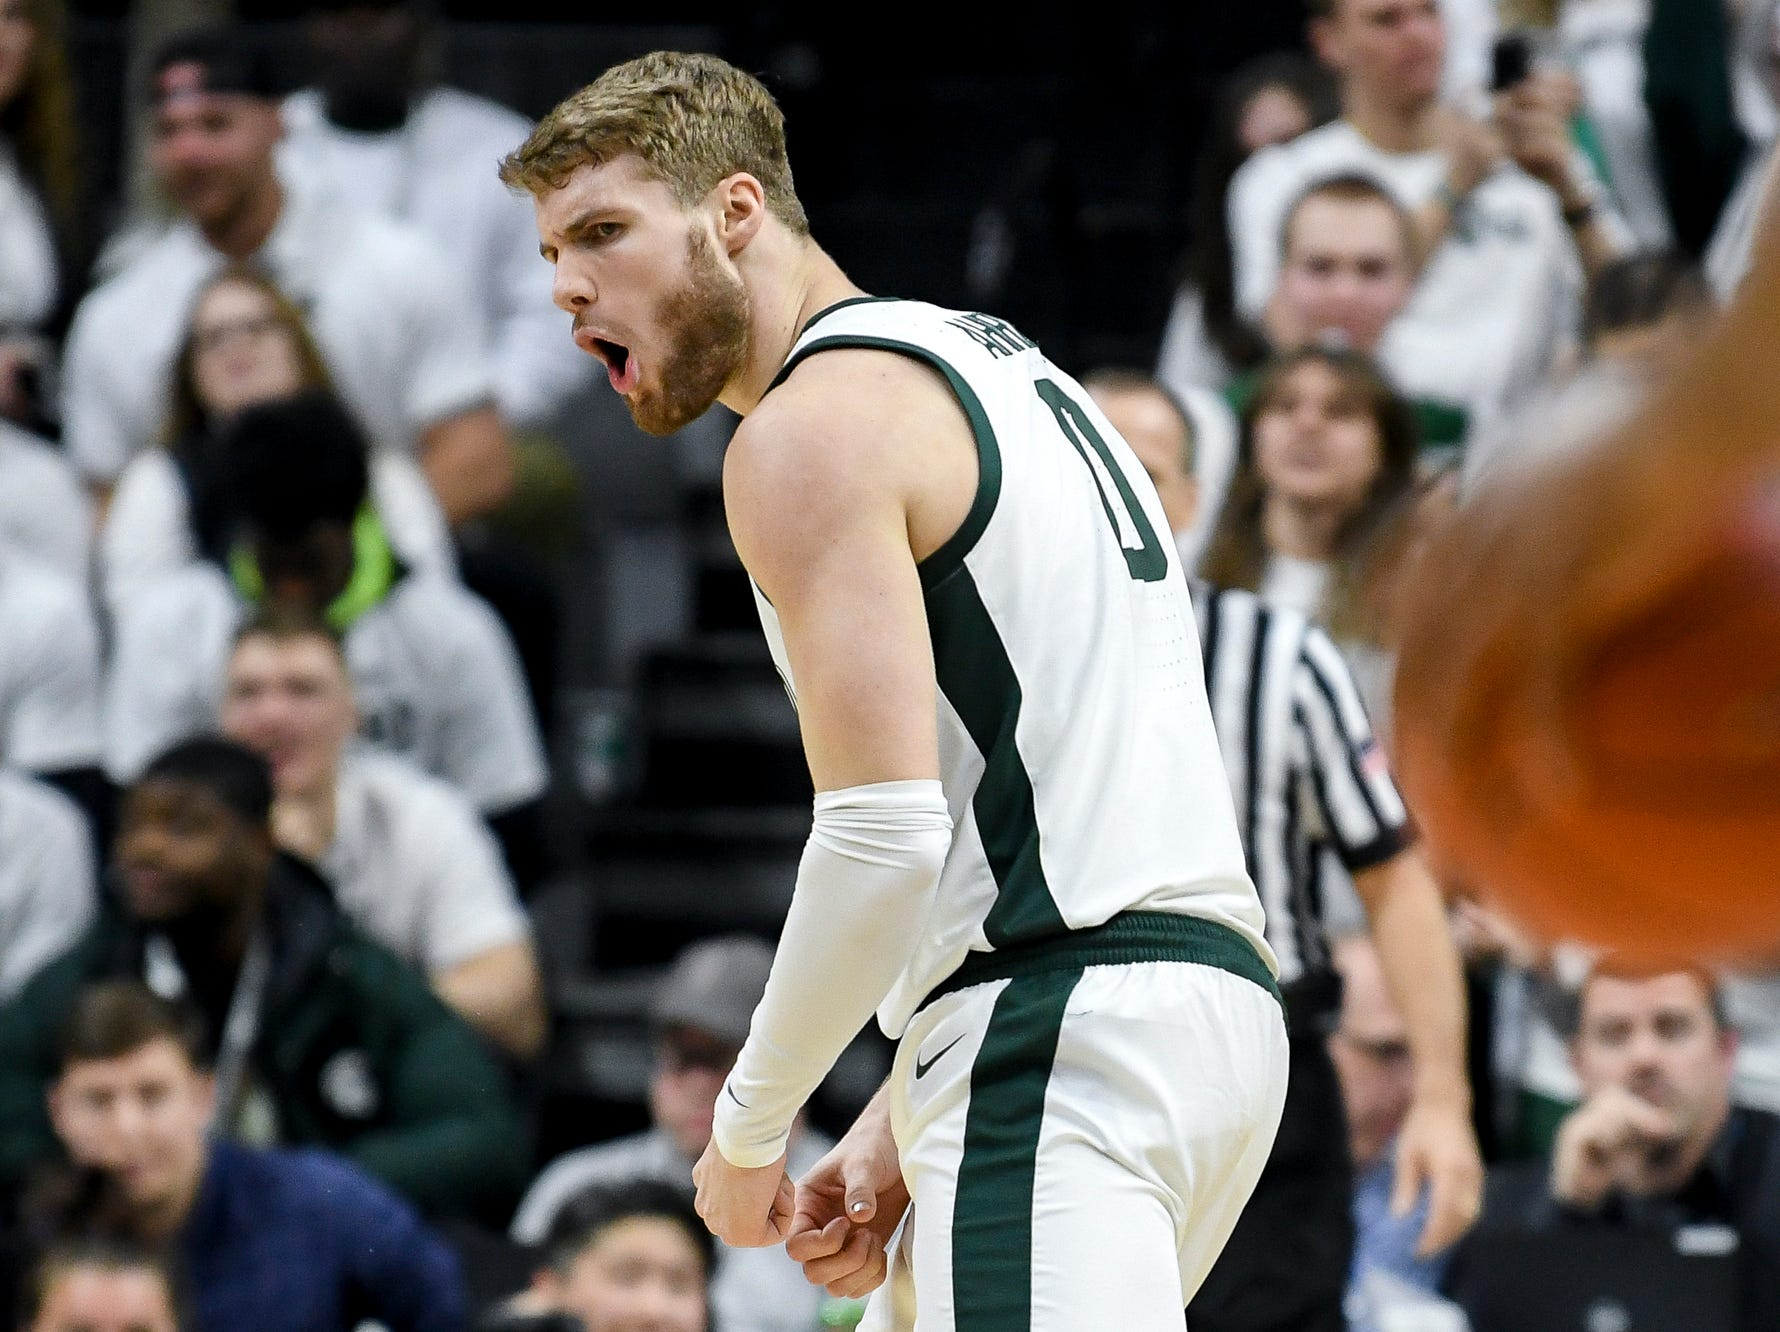 Michigan State's Kyle Ahrens celebrates after teammate Xavier Tillman's dunk during the first half on Saturday, March 9, 2019, at the Breslin Center in East Lansing.